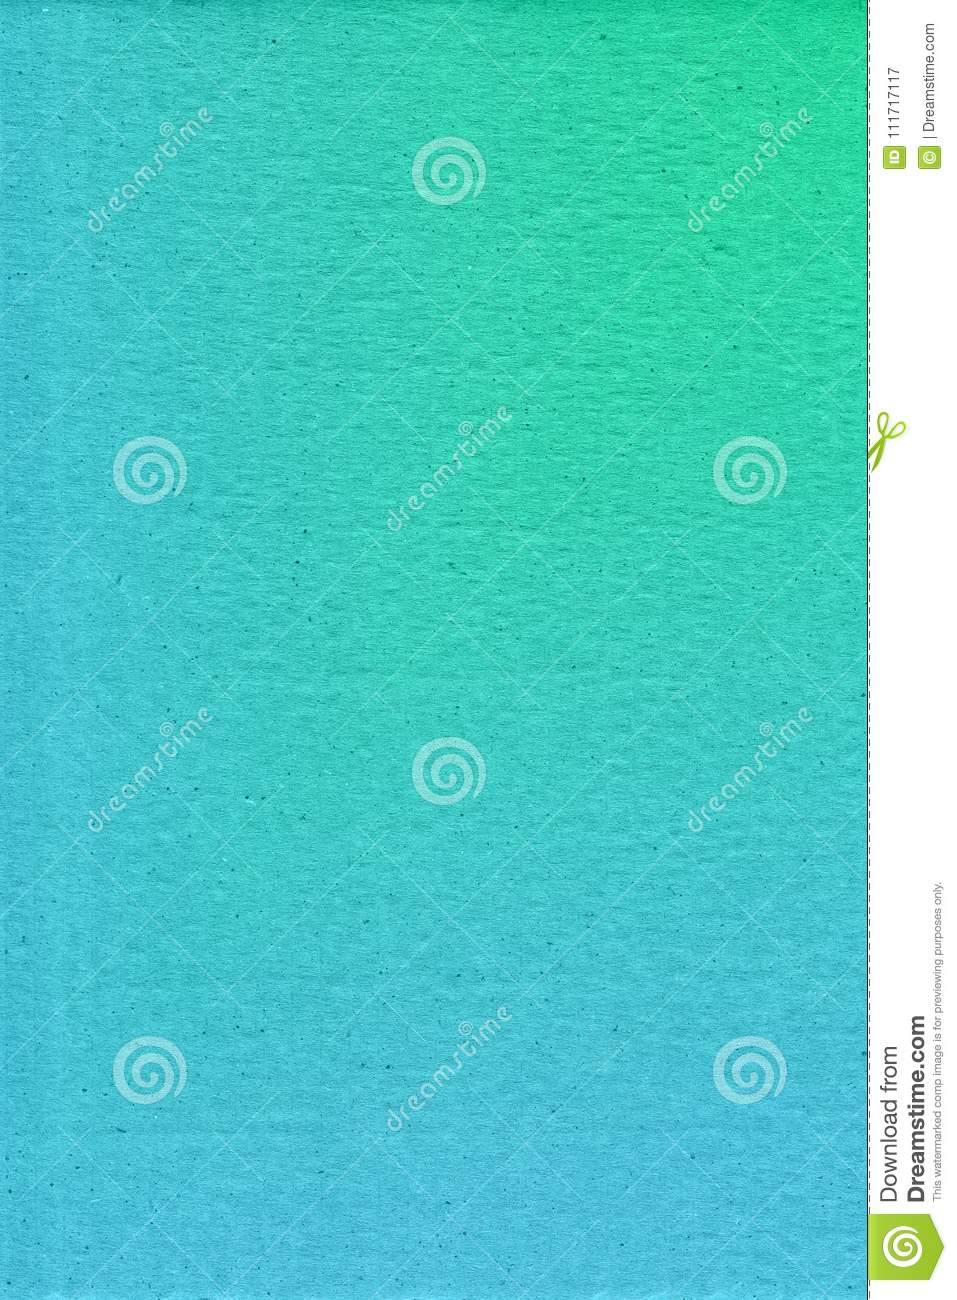 Abstract hand drawn green watercolor background, raster illustration